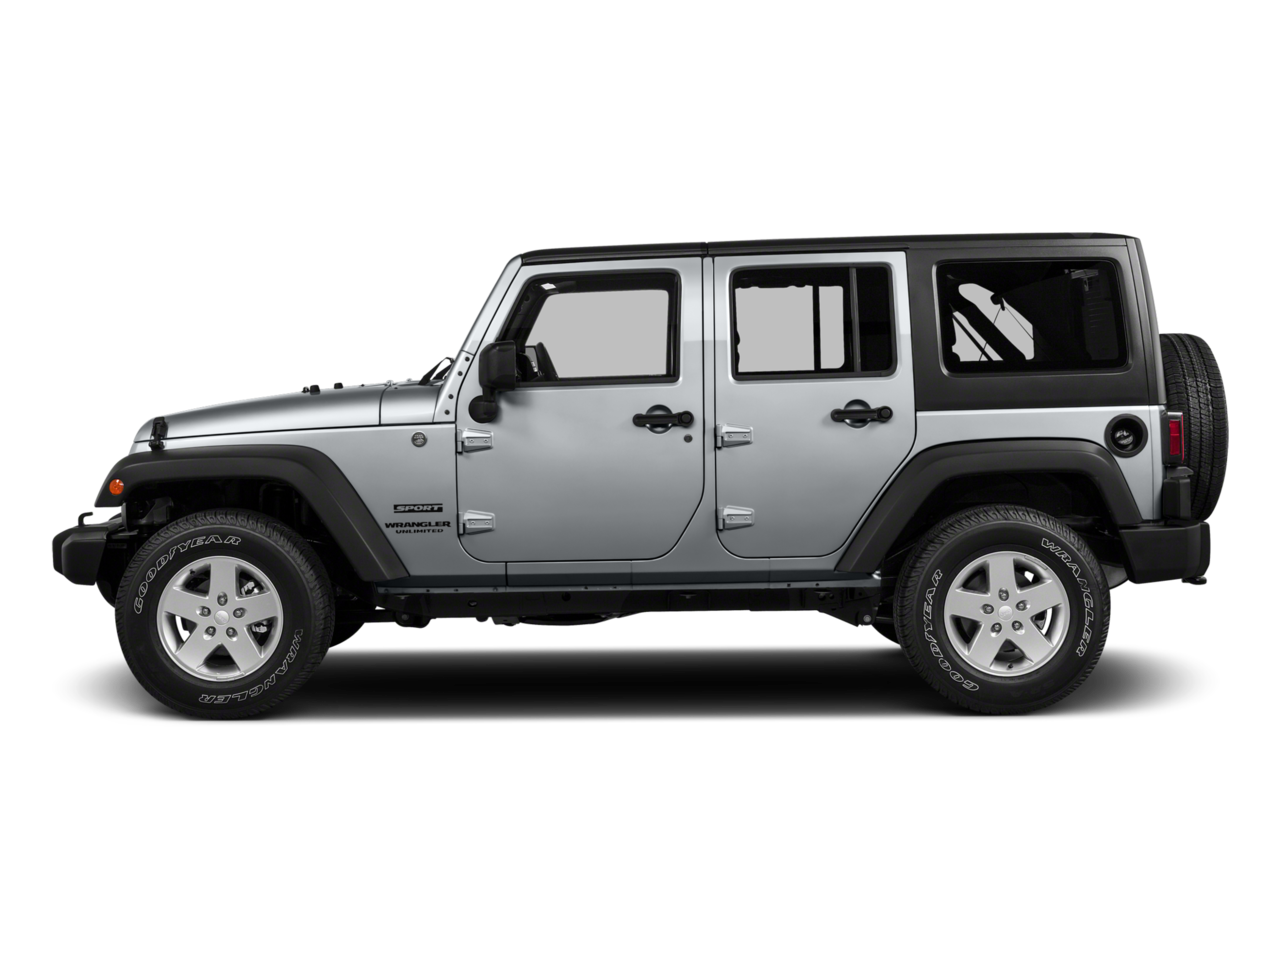 2016 Jeep Wrangler Unlimited 4WD 4dr Backcountry